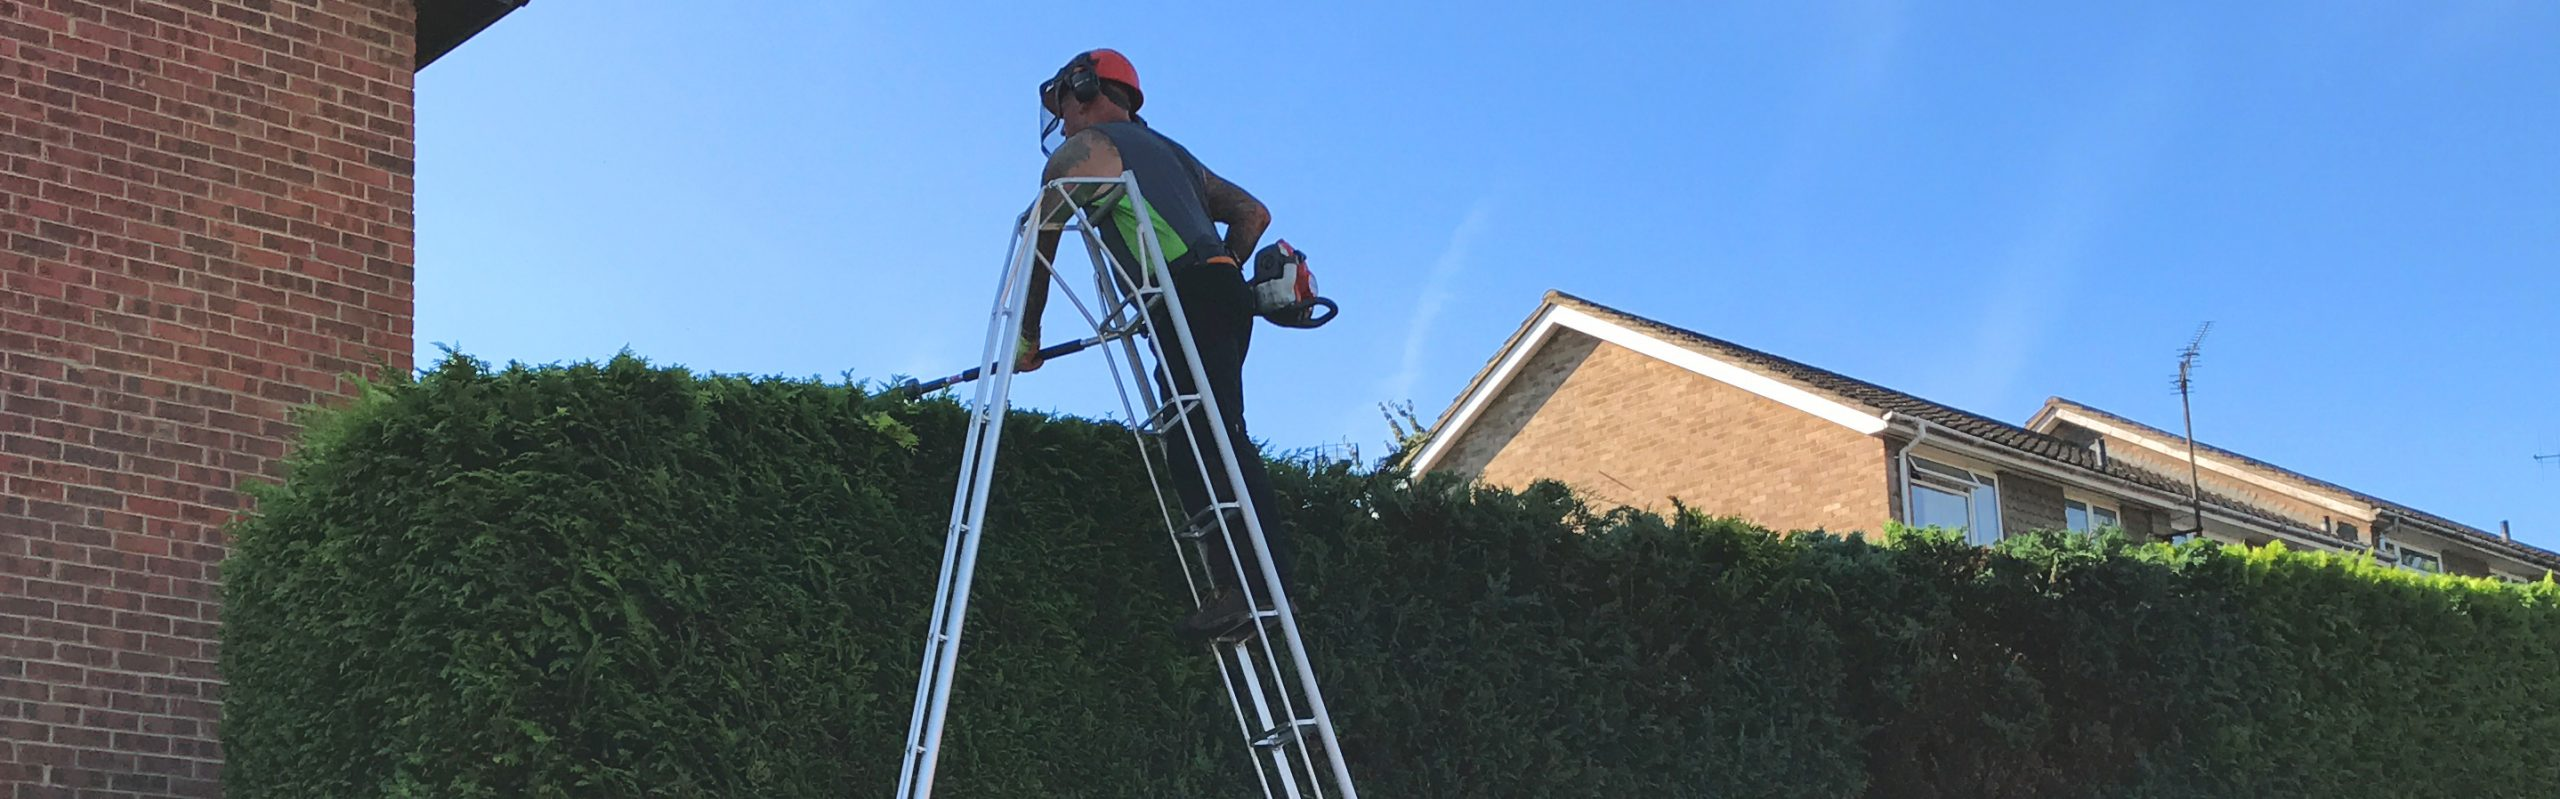 Tree Surgeon Maidstone